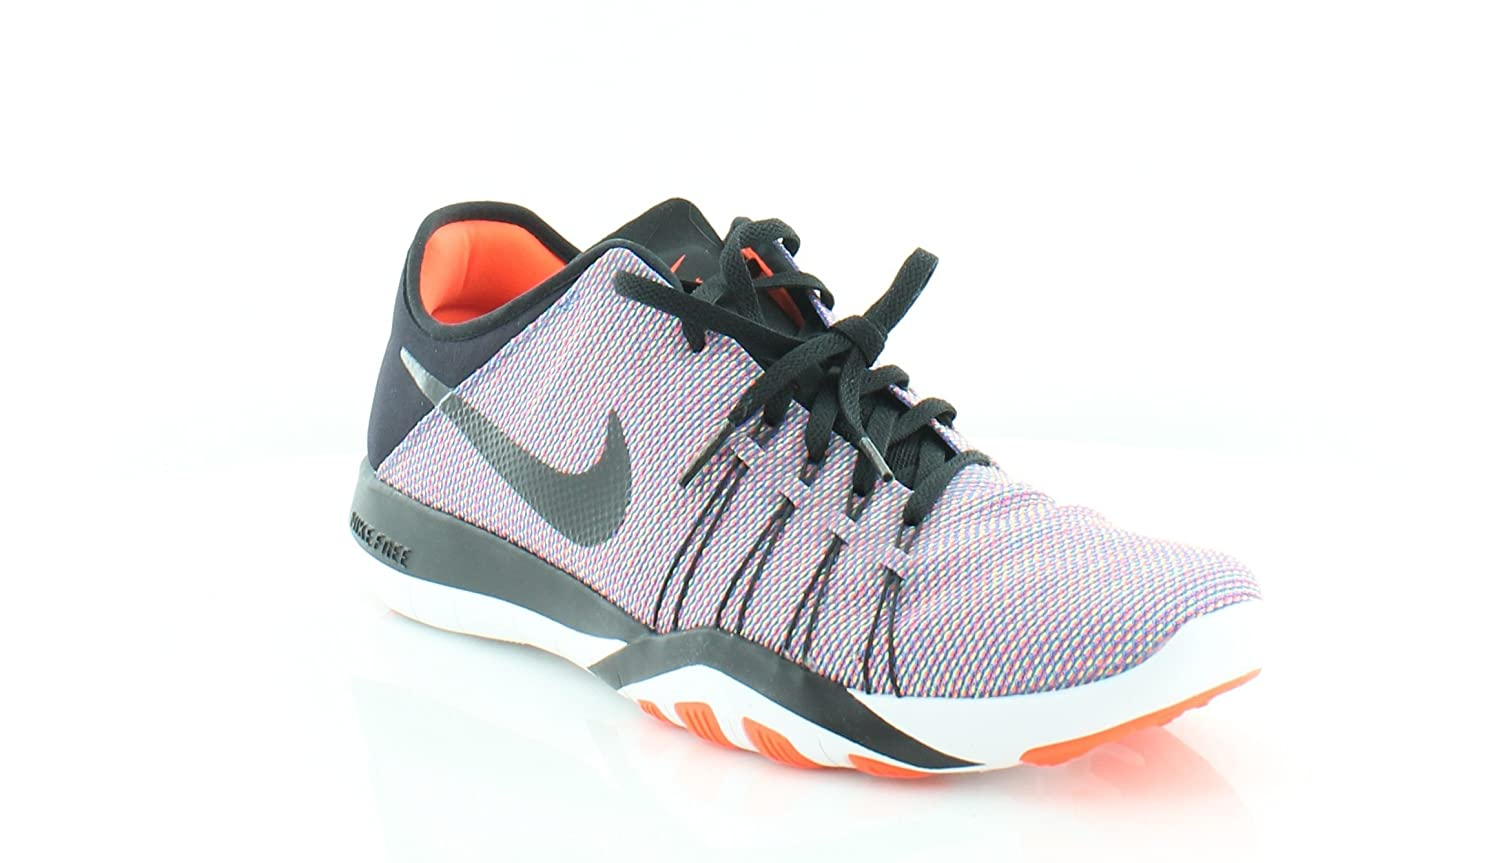 Womens Nike Free TR 6 Training Shoes B01FTKX0J8 8.5 B(M) US|Black / Total Crimson - White